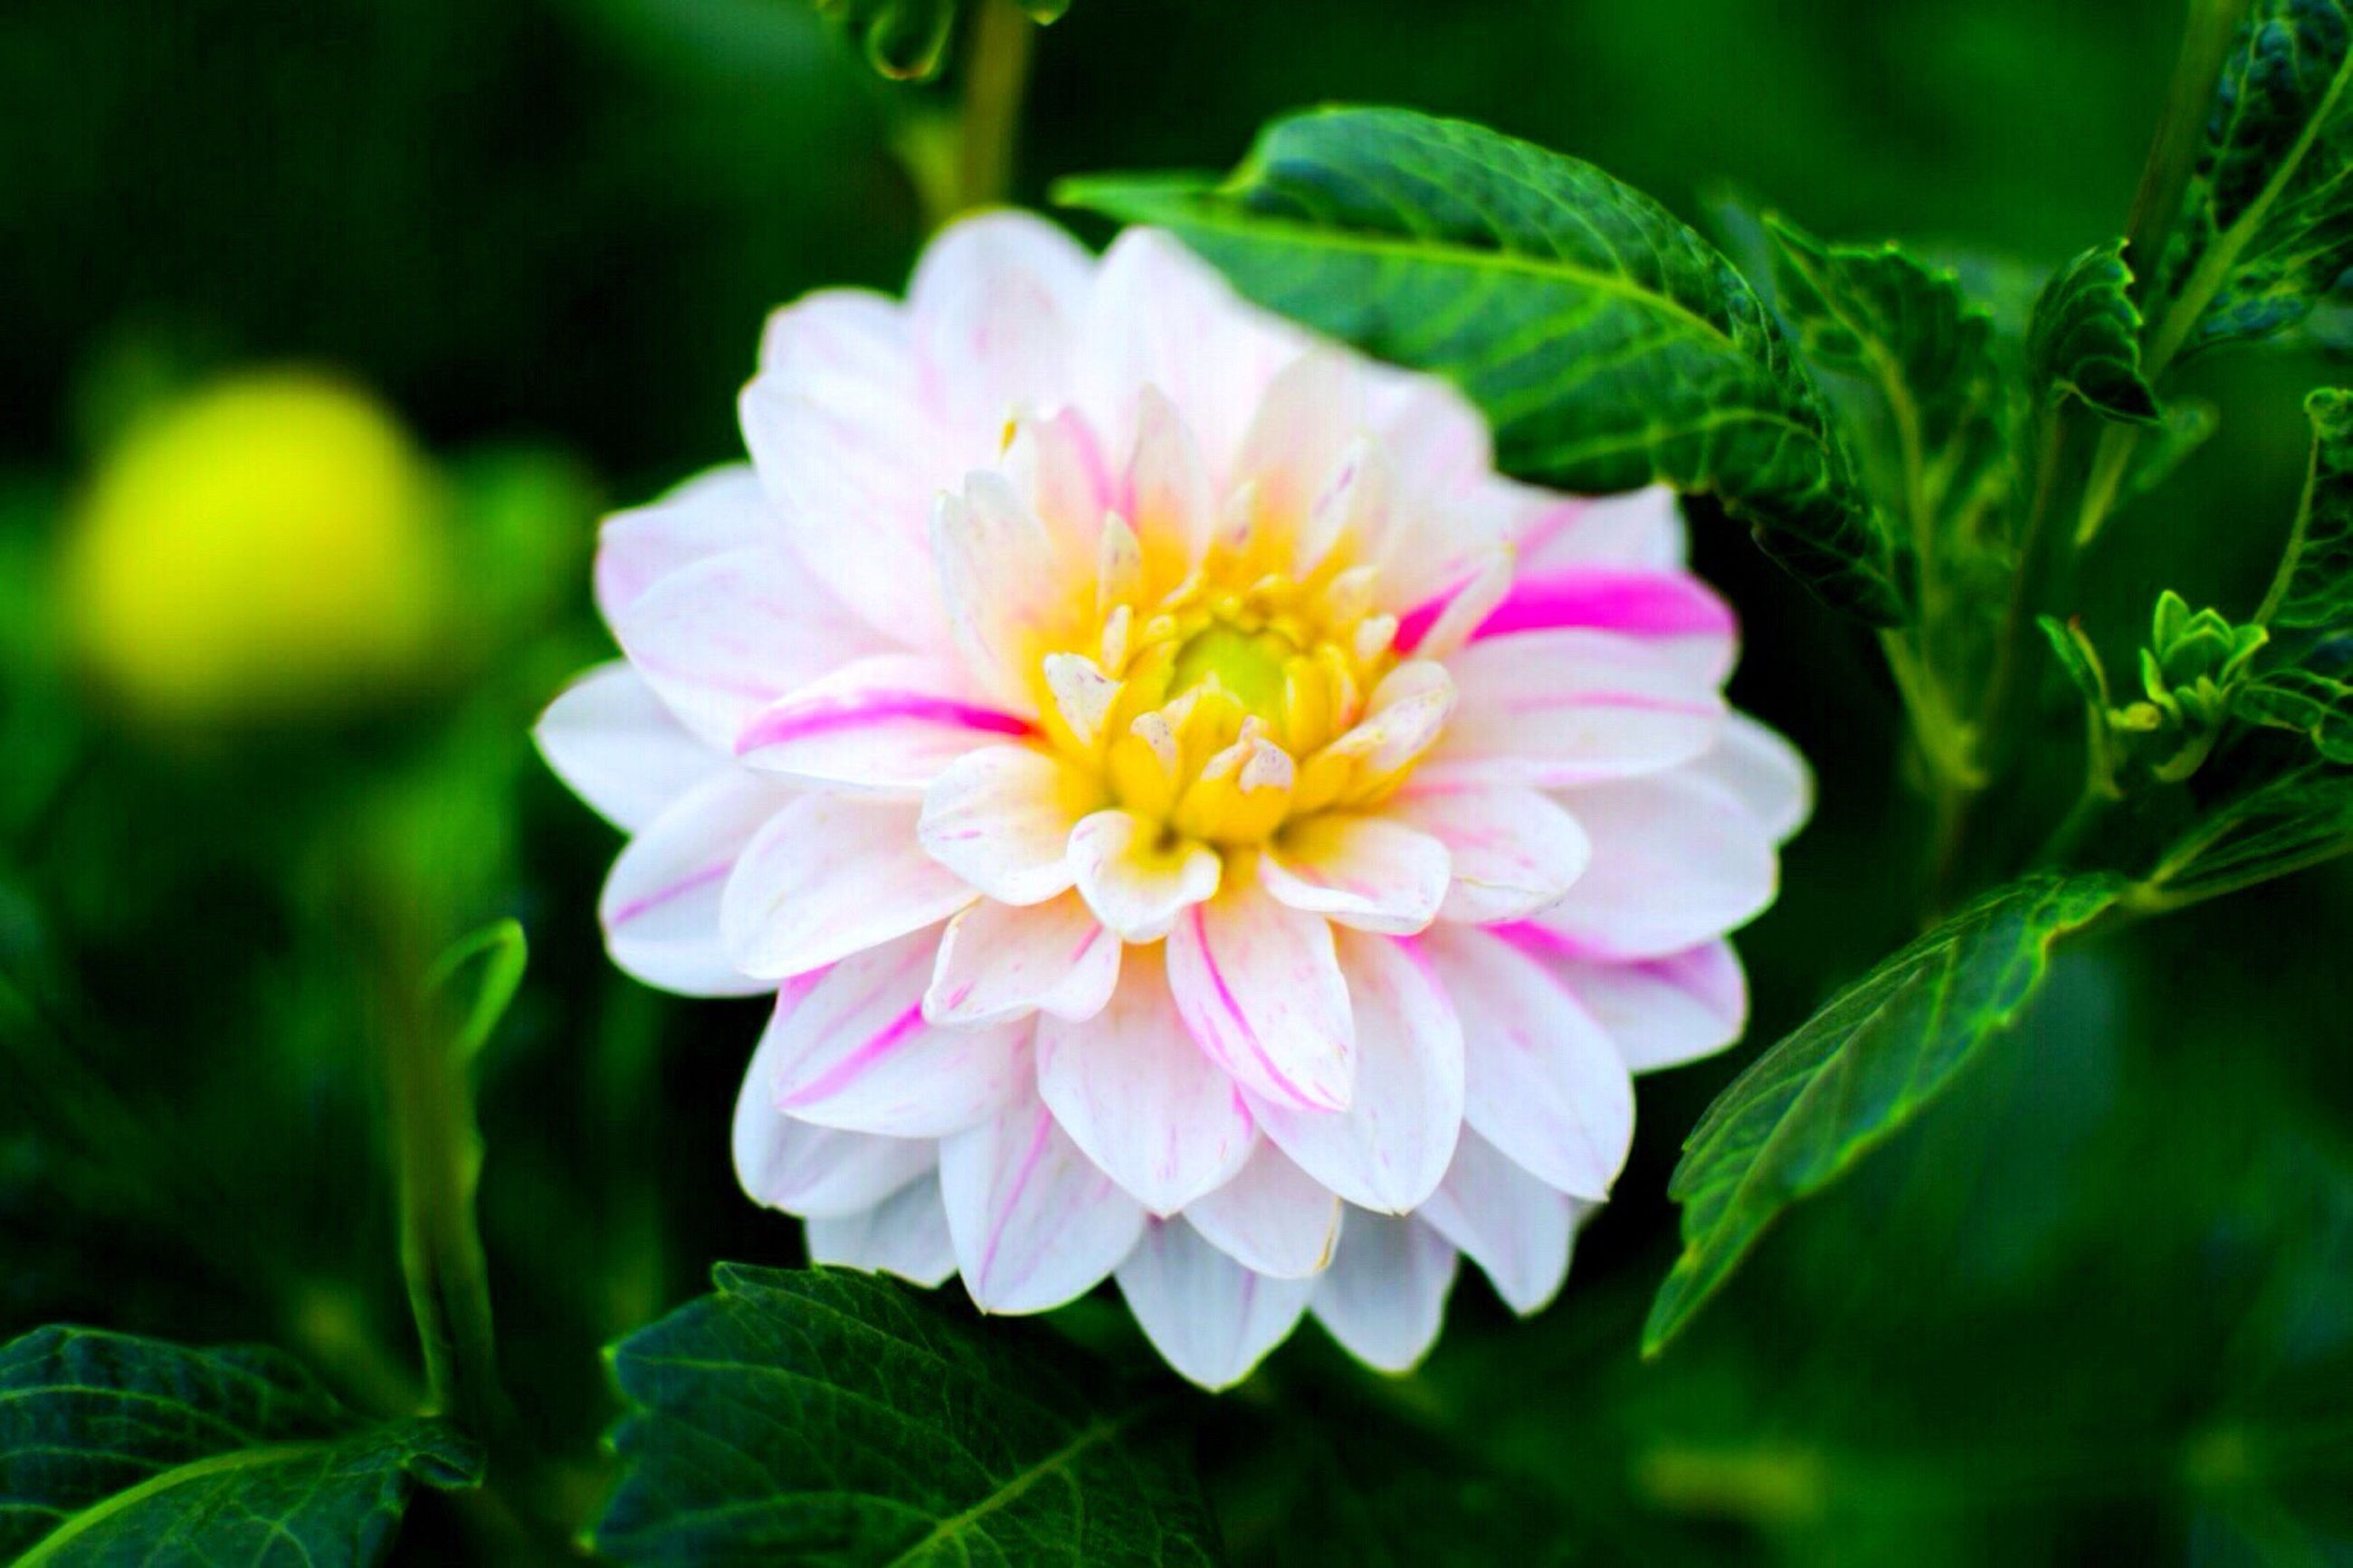 flower, petal, freshness, fragility, flower head, growth, beauty in nature, close-up, pink color, focus on foreground, blooming, single flower, nature, plant, leaf, in bloom, pollen, day, park - man made space, outdoors